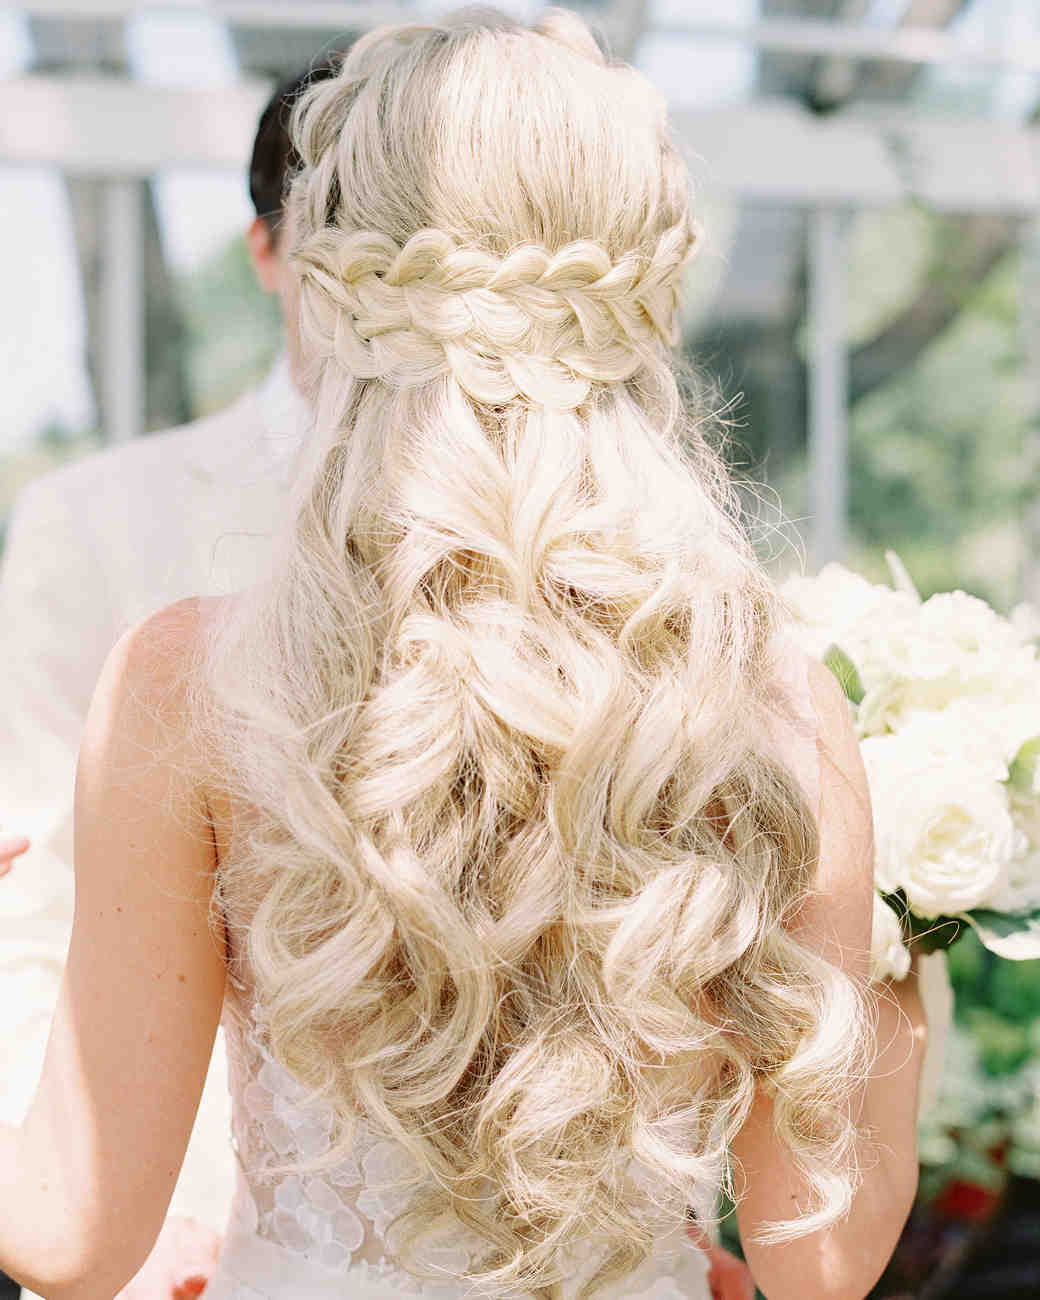 Wedding Hairstyle With Braids: 28 Half-Up, Half-Down Wedding Hairstyles We Love